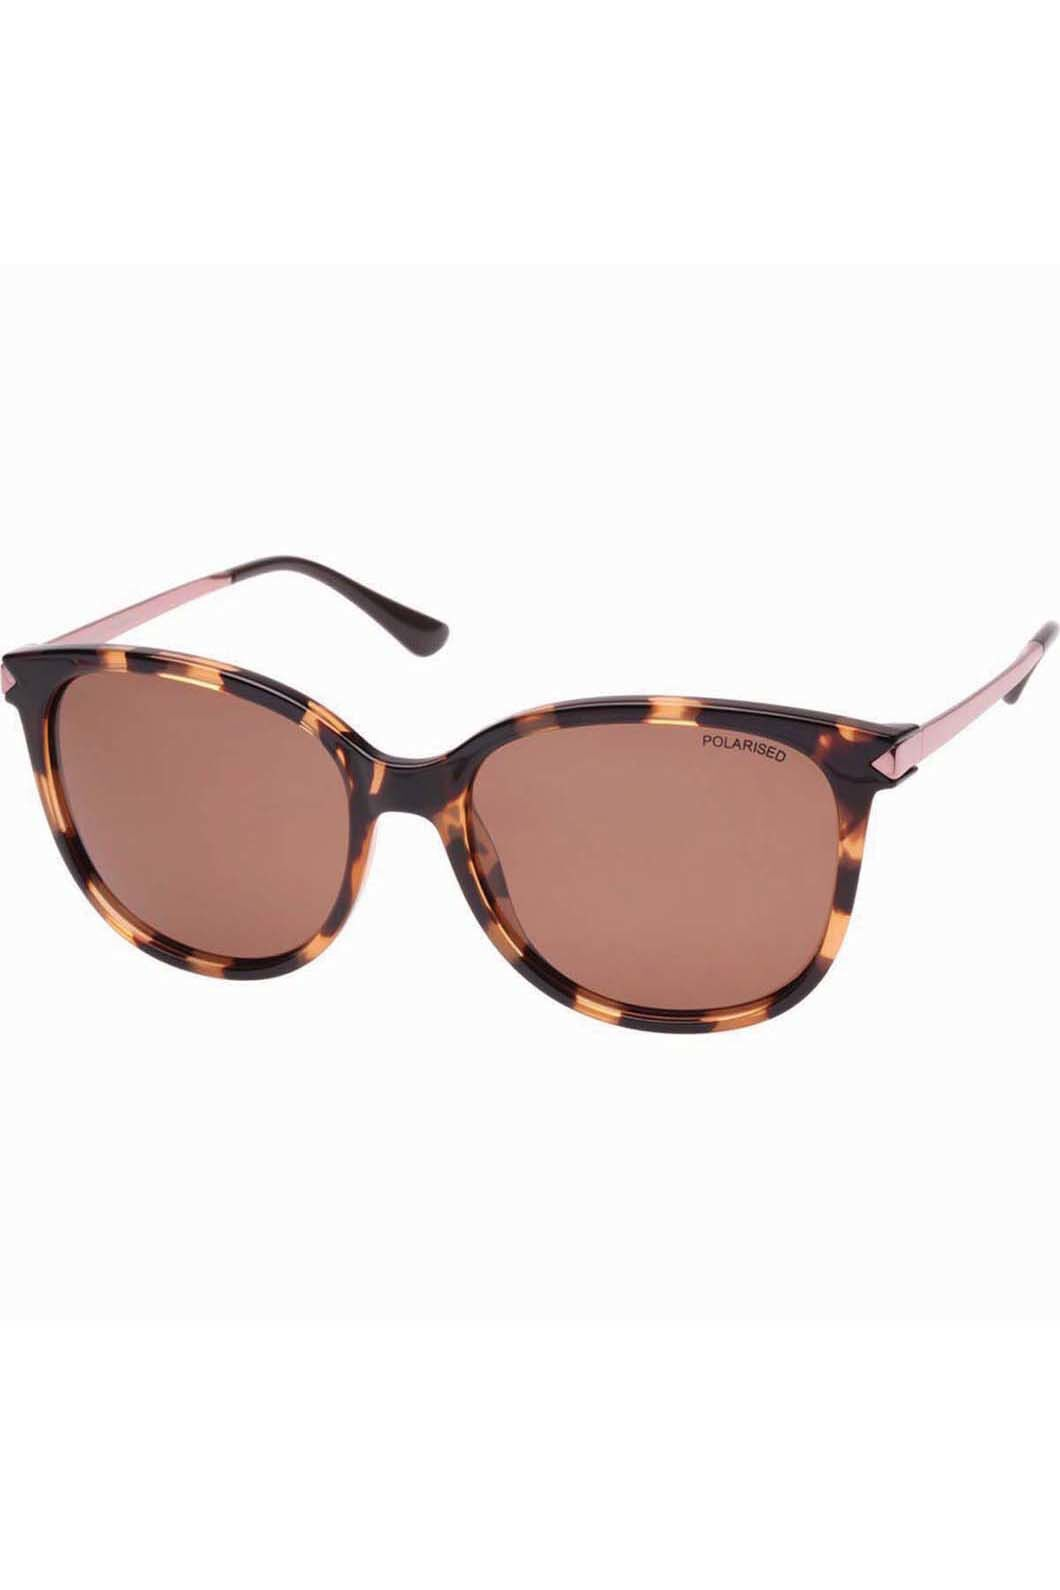 Cancer Council Women's Salisbury Sunglasses One Size Fits Most, HONEY TORT/ROSE, hi-res